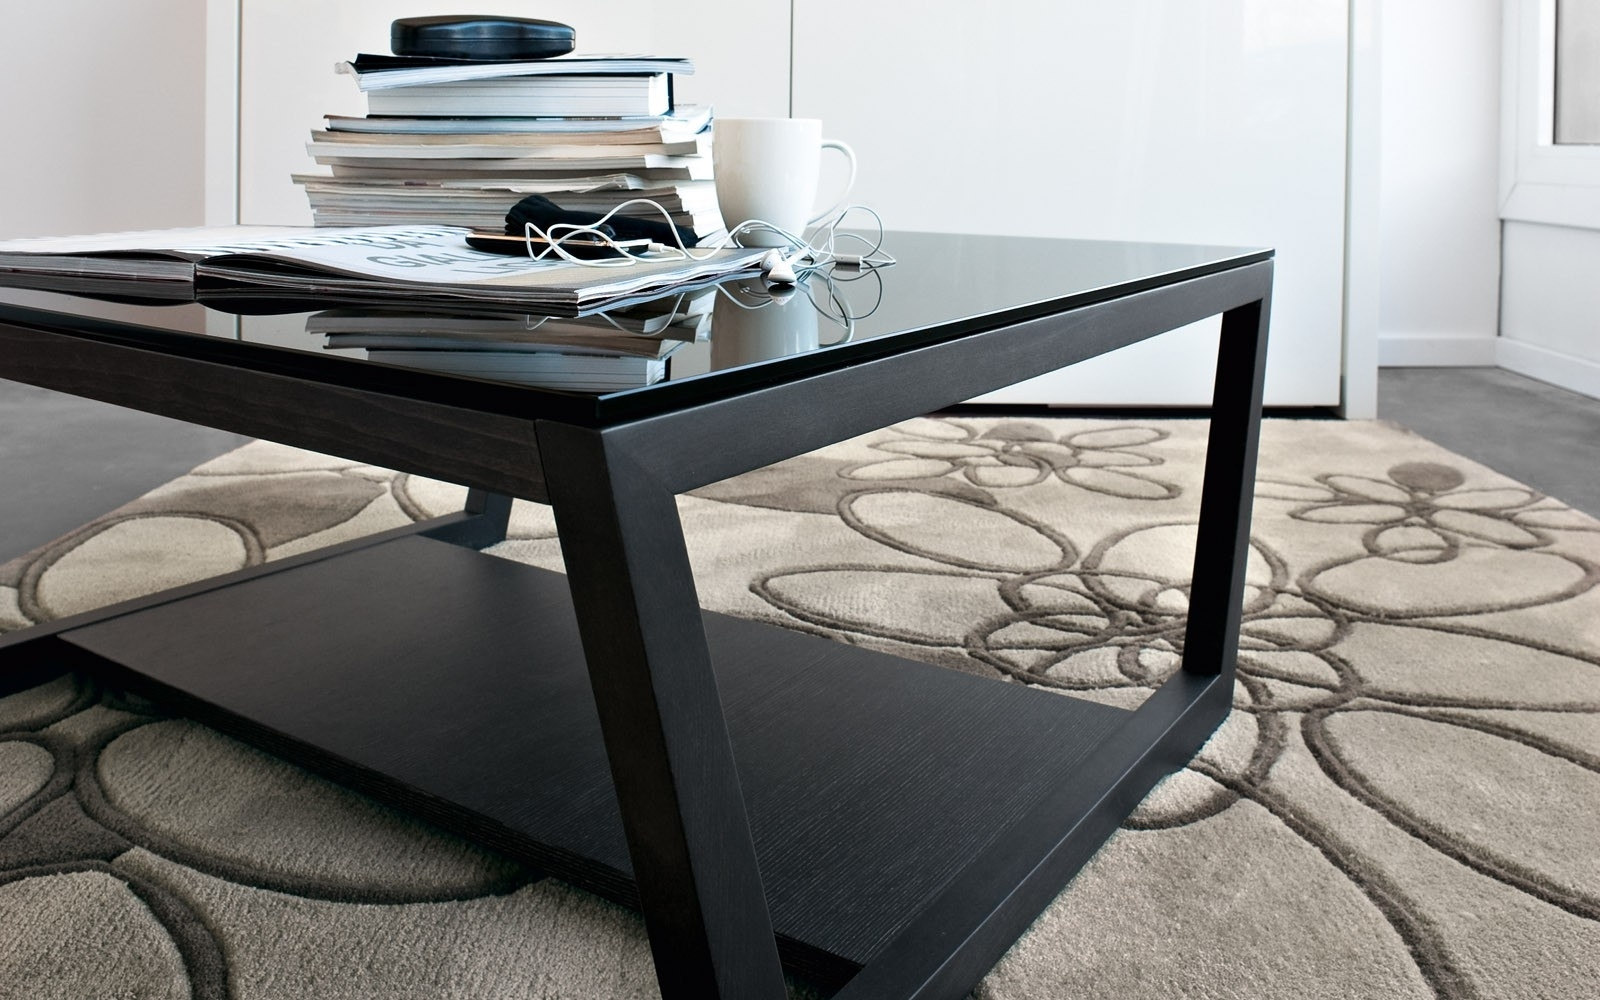 Cs/5043-R Element Coffee Table, Calligaris Italy - Italmoda regarding Element Coffee Tables (Image 15 of 30)